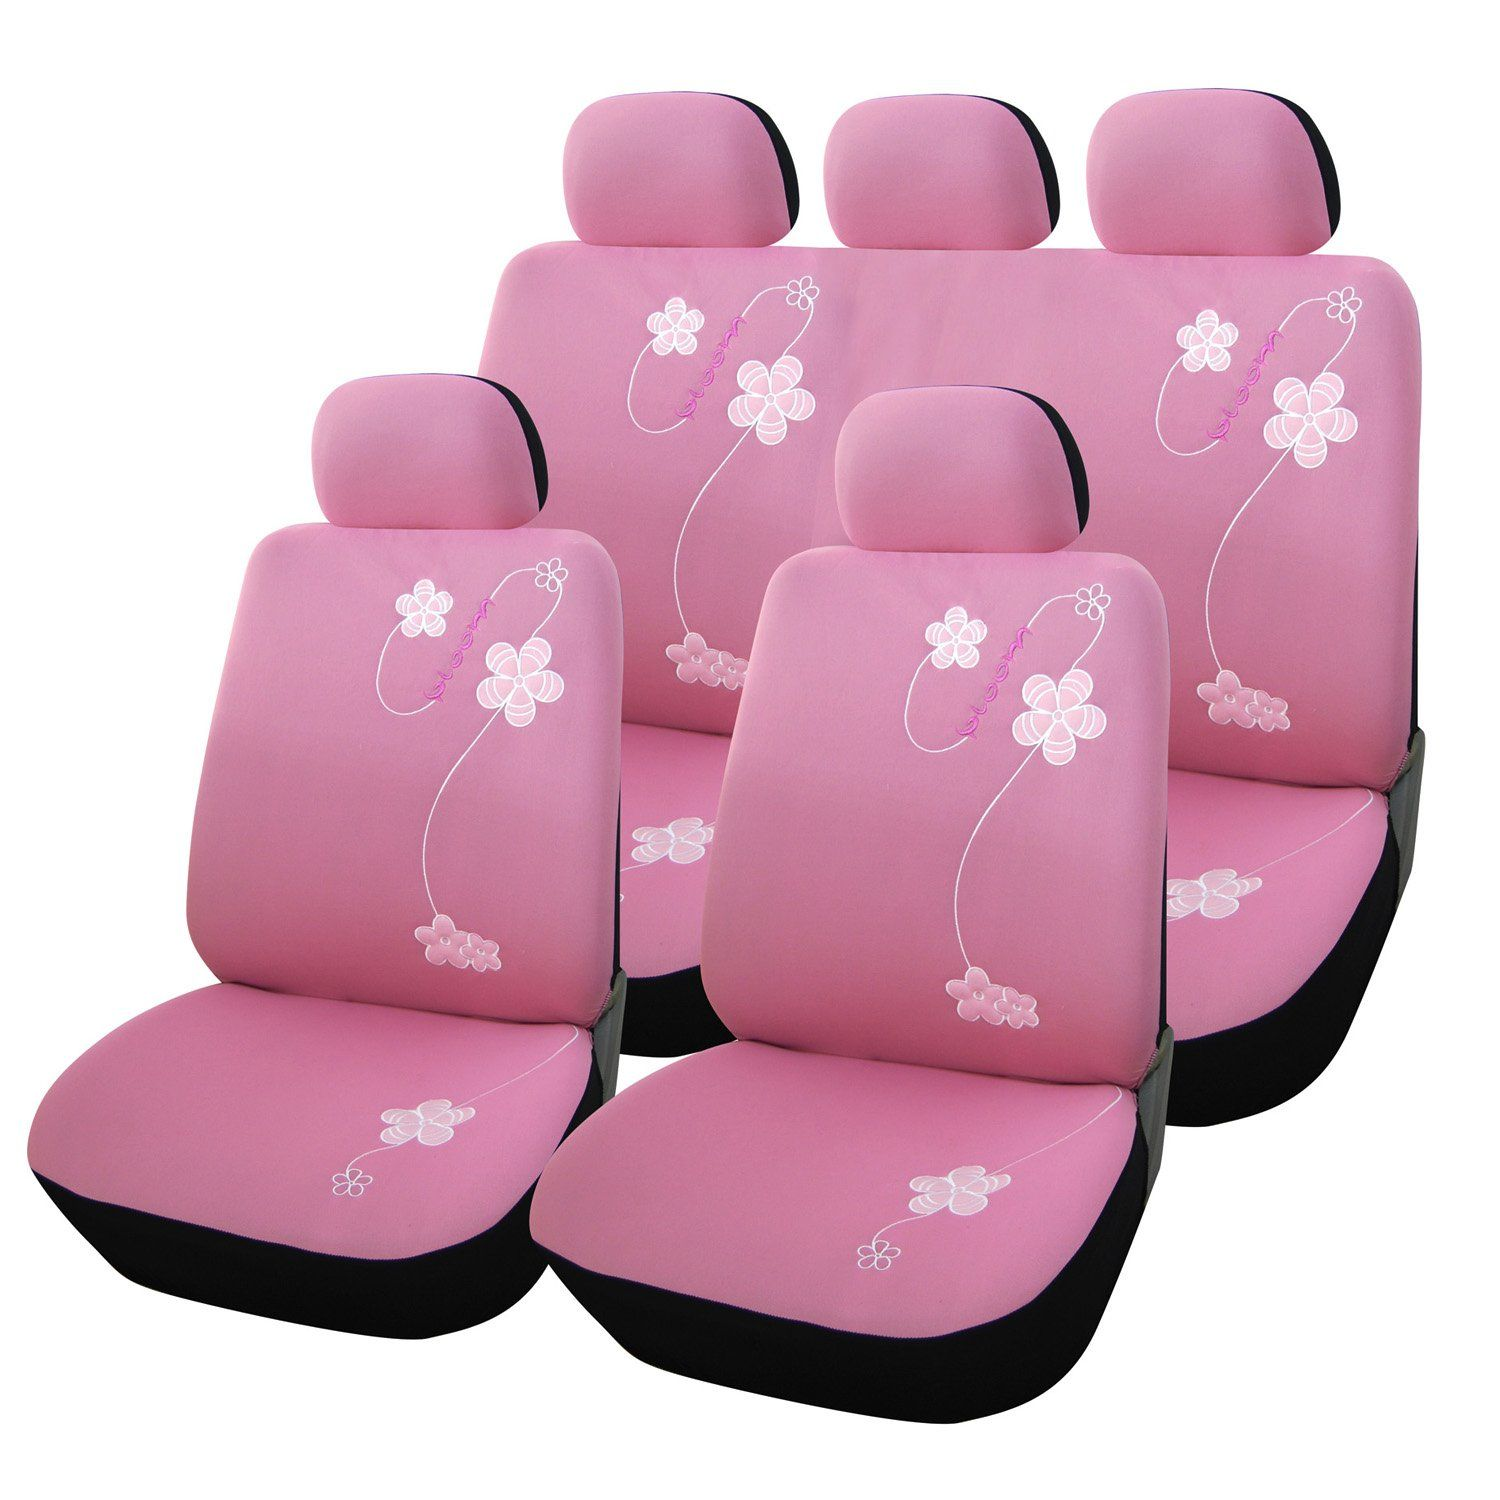 Girly Car Seat Covers and Mats for Women (With images